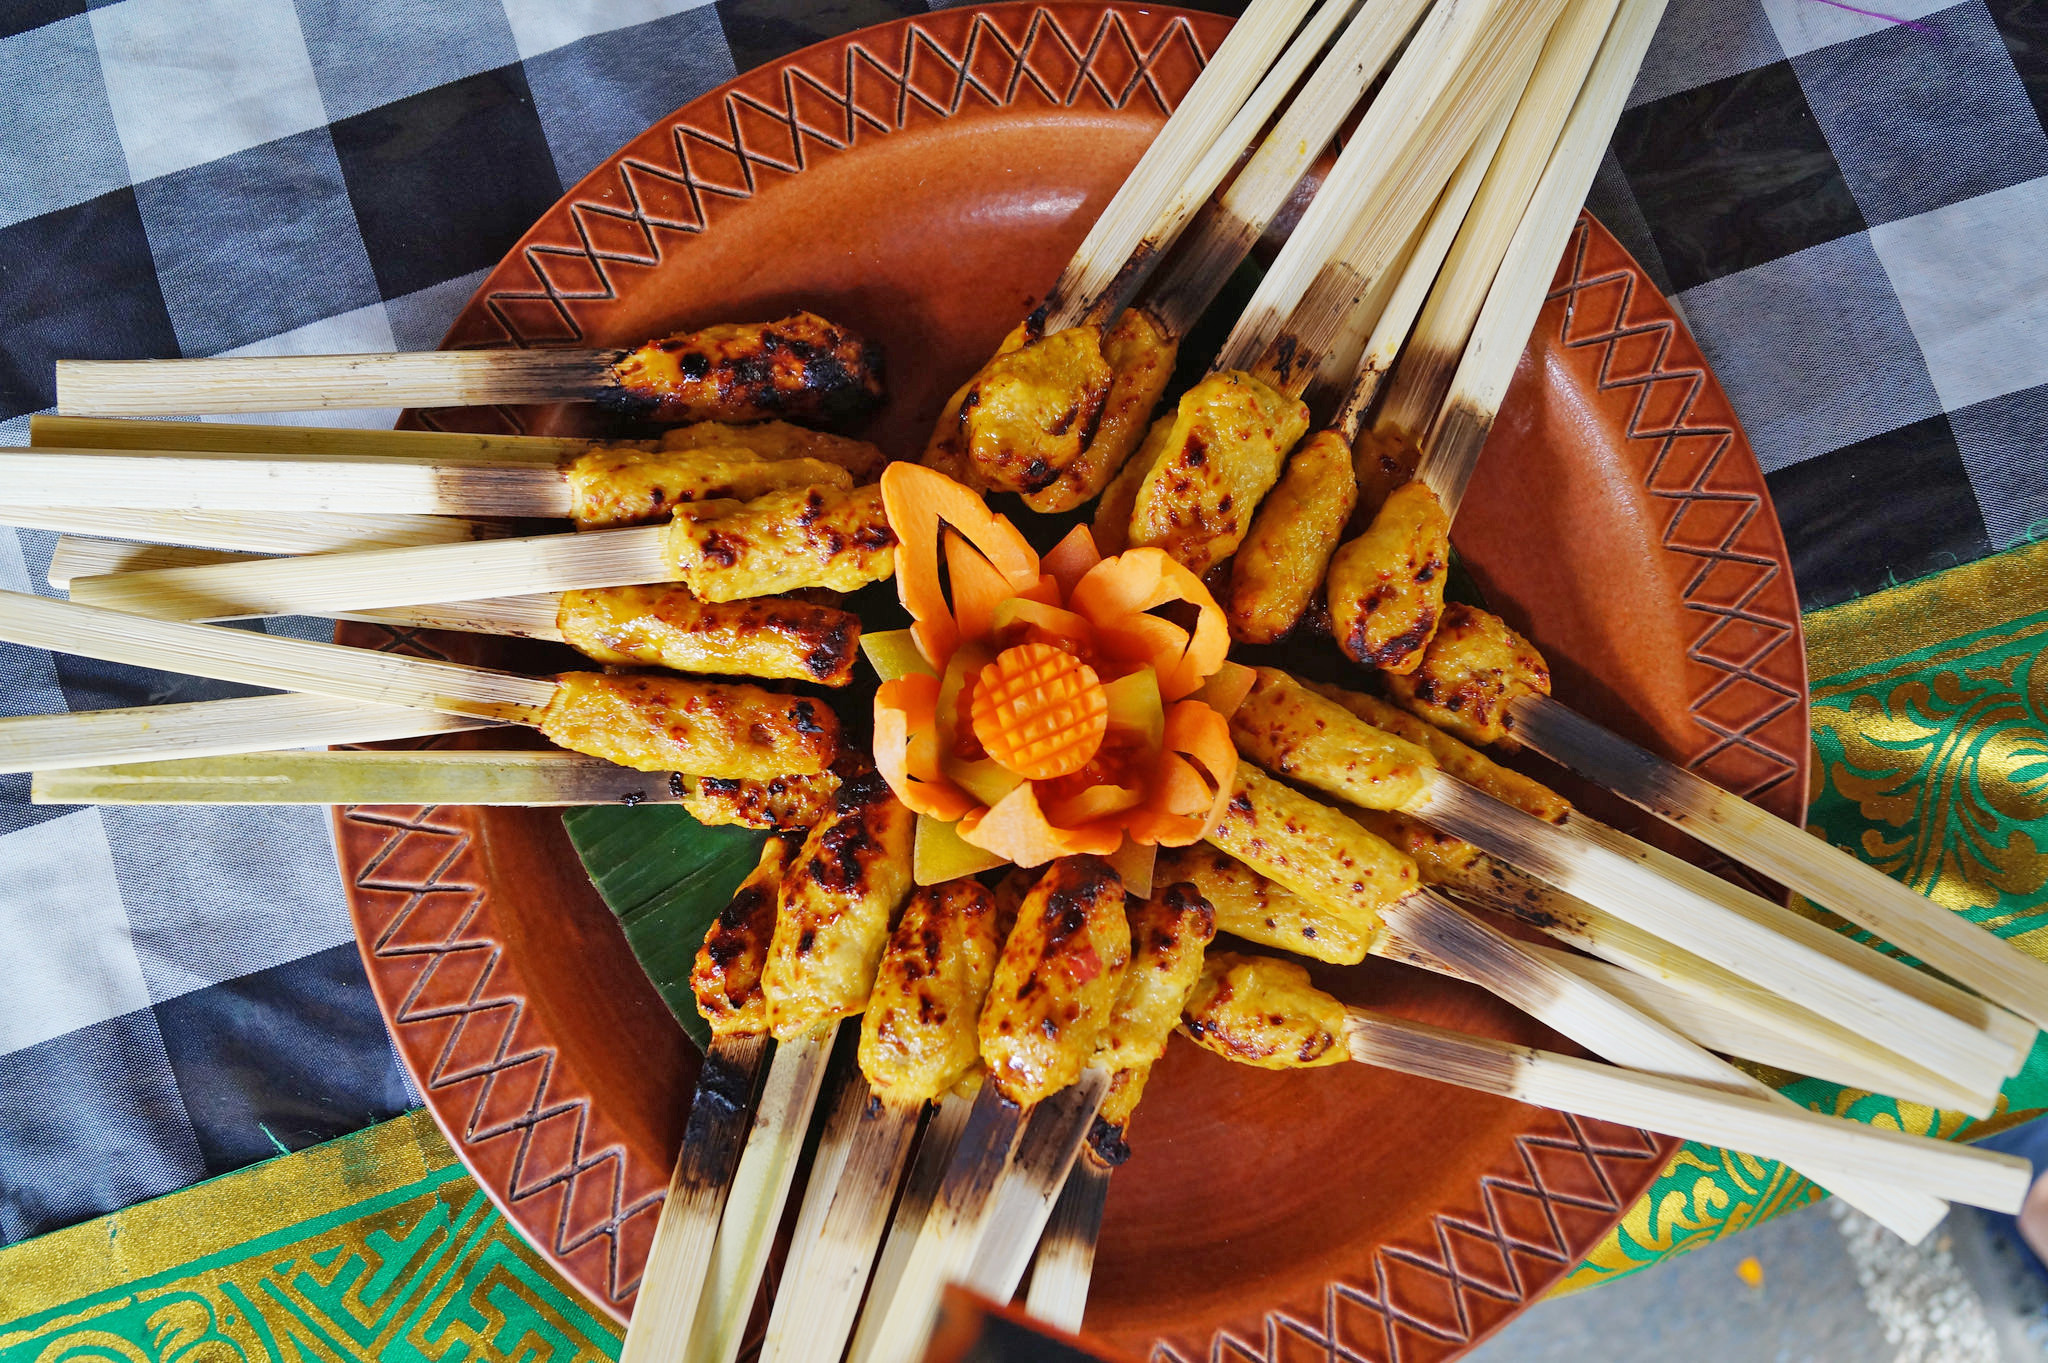 13 Local Balinese Food to Try & Where to Find Them